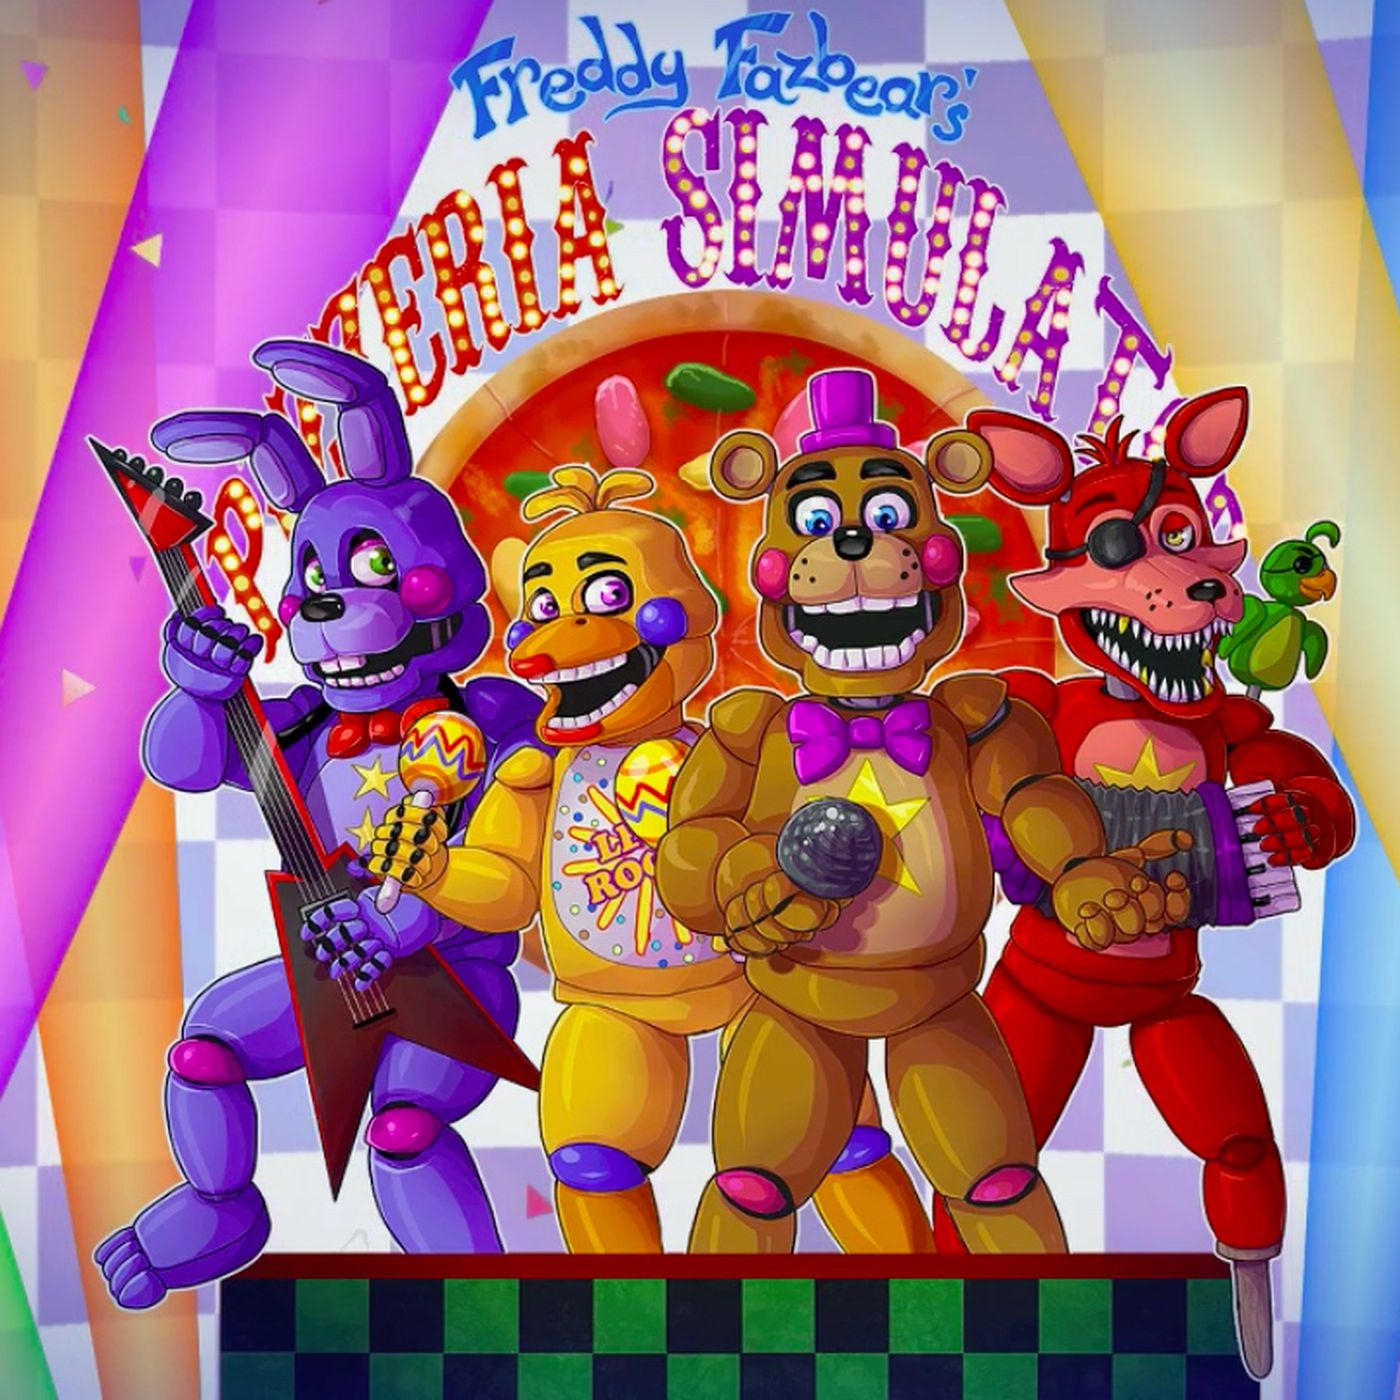 Surprise Five Nights at Freddy's spinoff hits Steam — and